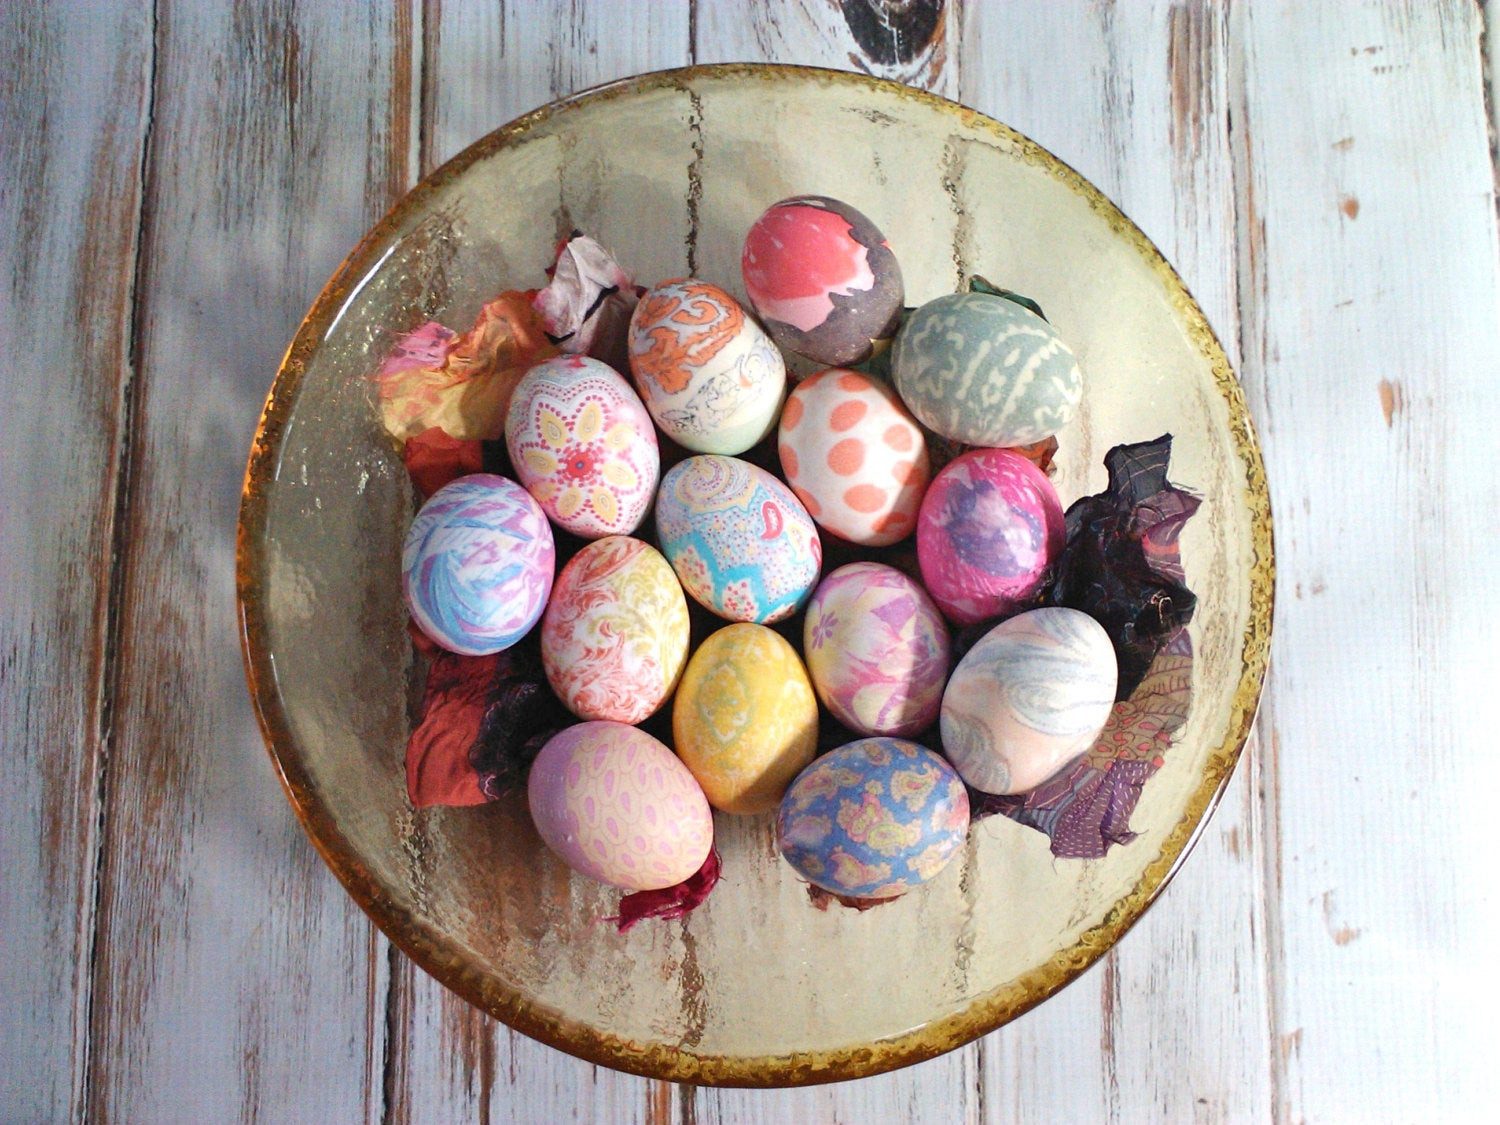 Easter Egg Dying Party Ideas  Easter Egg Silk Dye Kit Eco Friendly Up cycled kid friendly